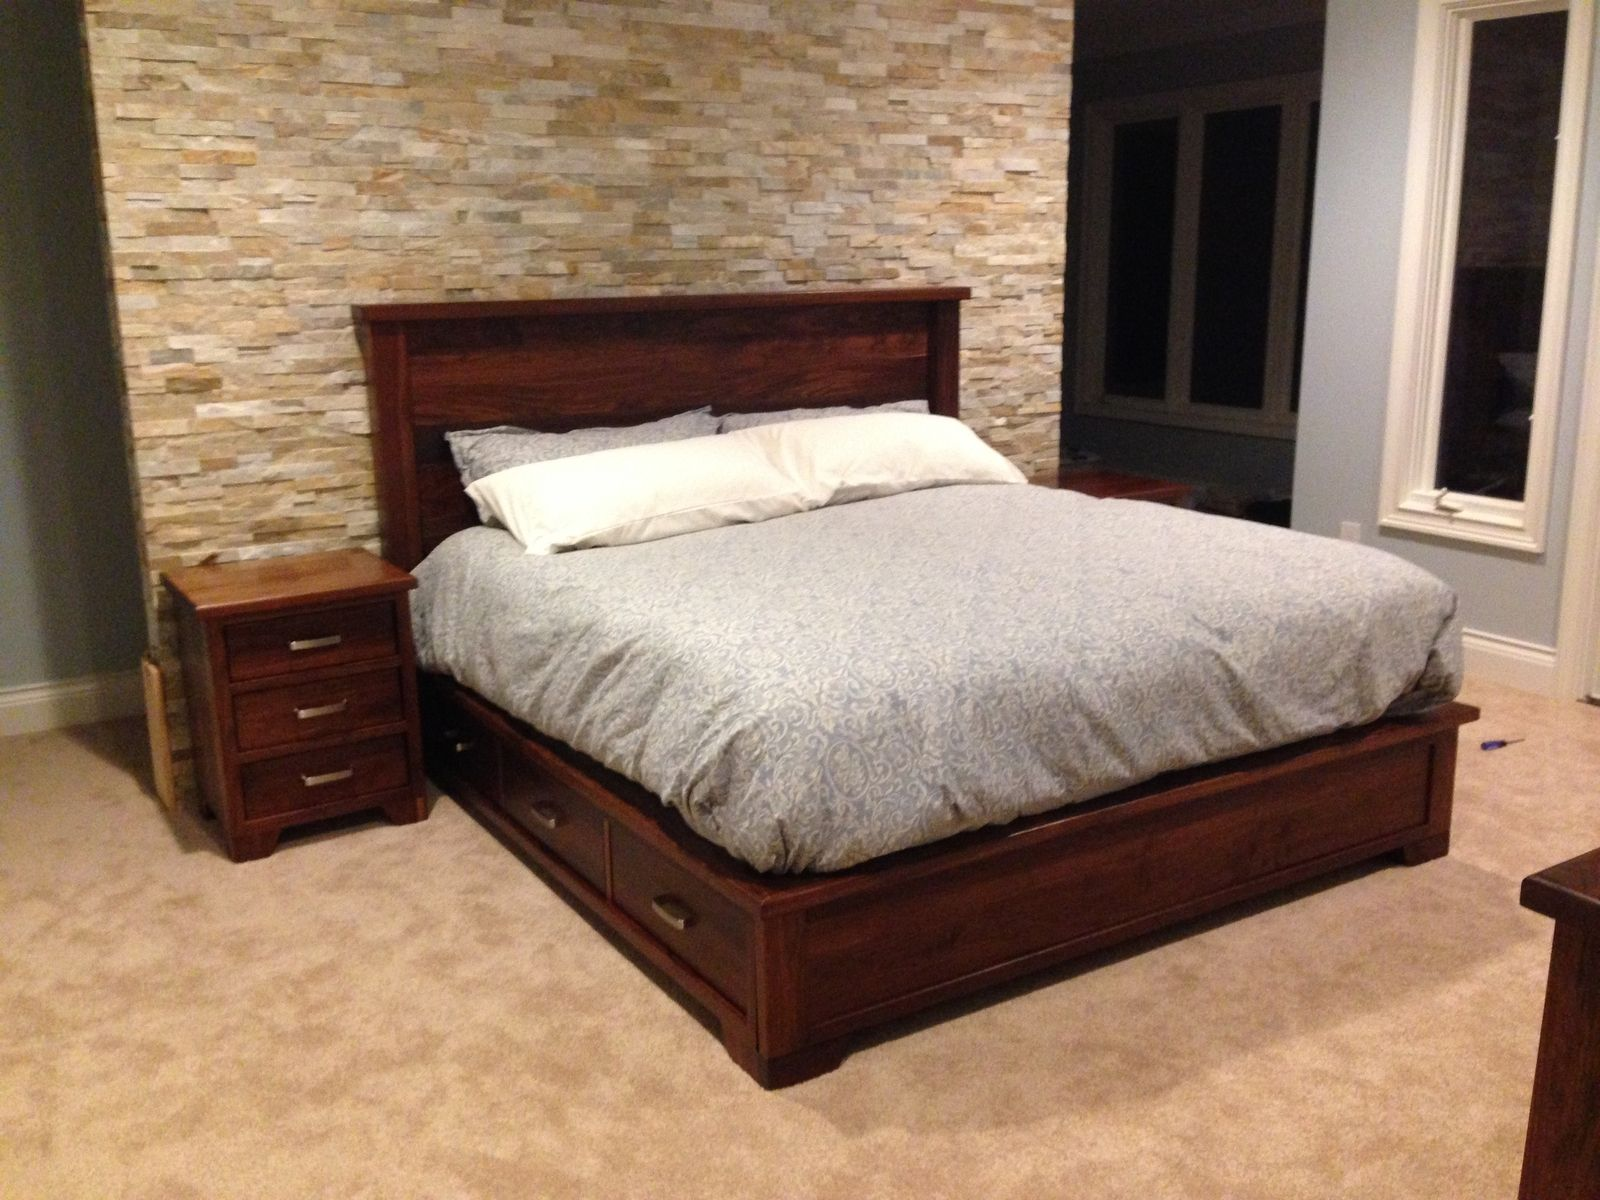 Hand Crafted Walnut Bedroom Set by The Plane Edge, LLC